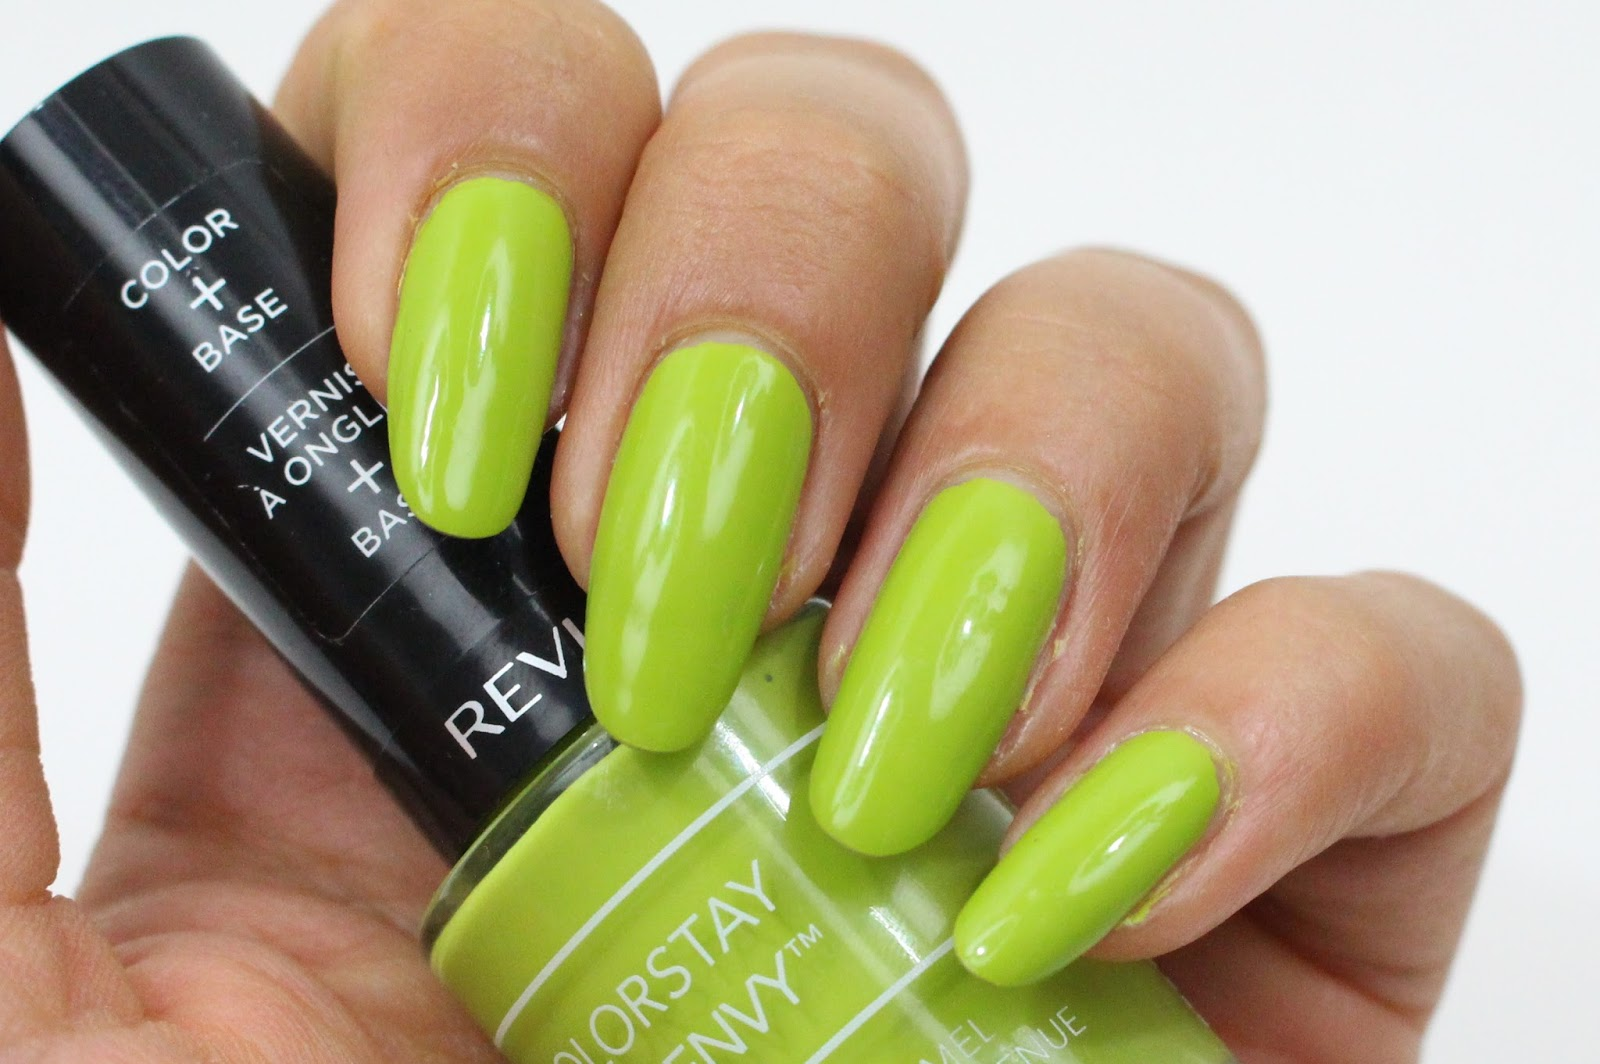 Manimonday Revlon In The Money My Beauty Box Essence Gel Nail Polish 65 Good Limes